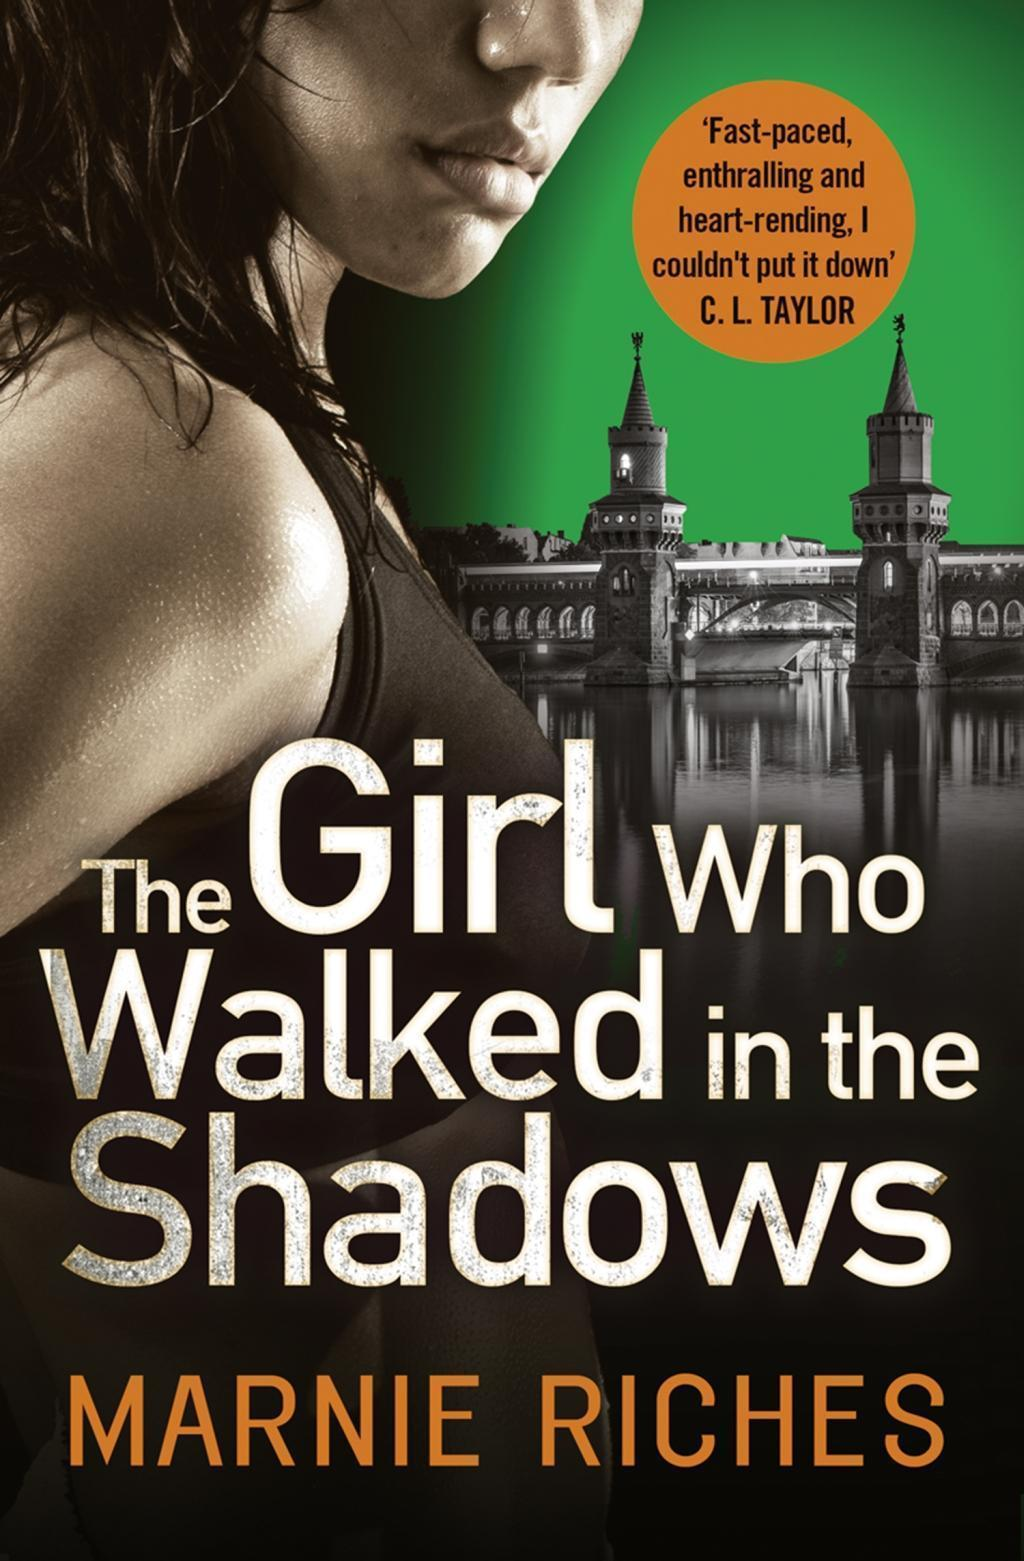 The Girl Who Walked in the Shadows: A gripping thriller that keeps you on the edge of your seat